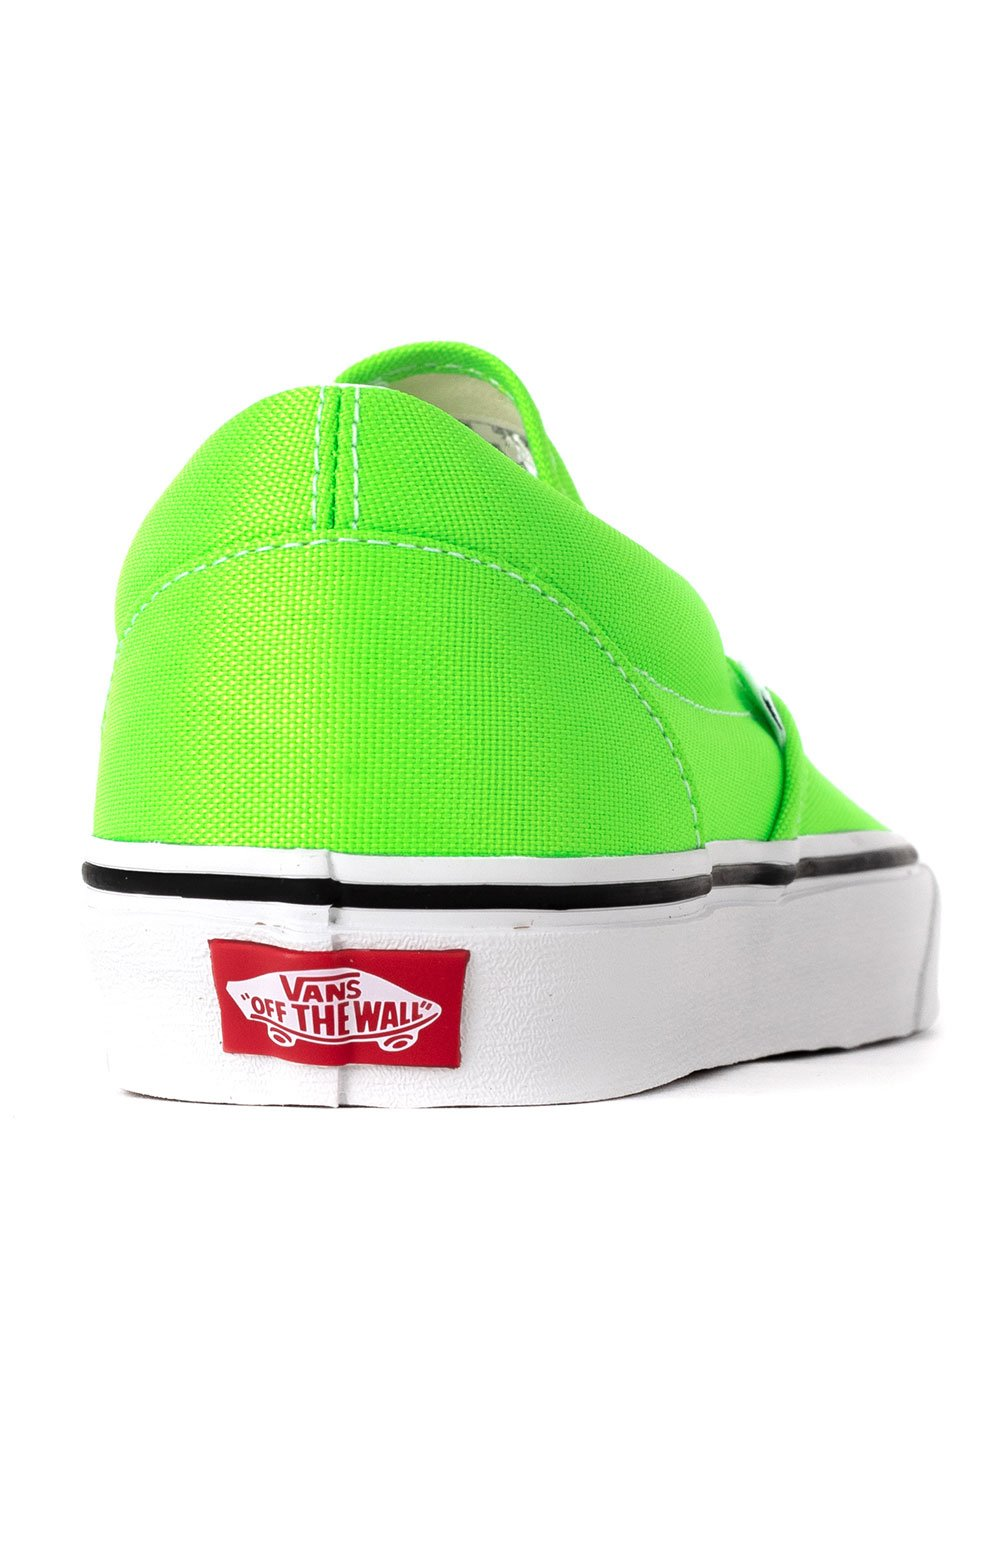 (U38WT5) Neon Classic Slip-On Shoes - Green Gecko 5